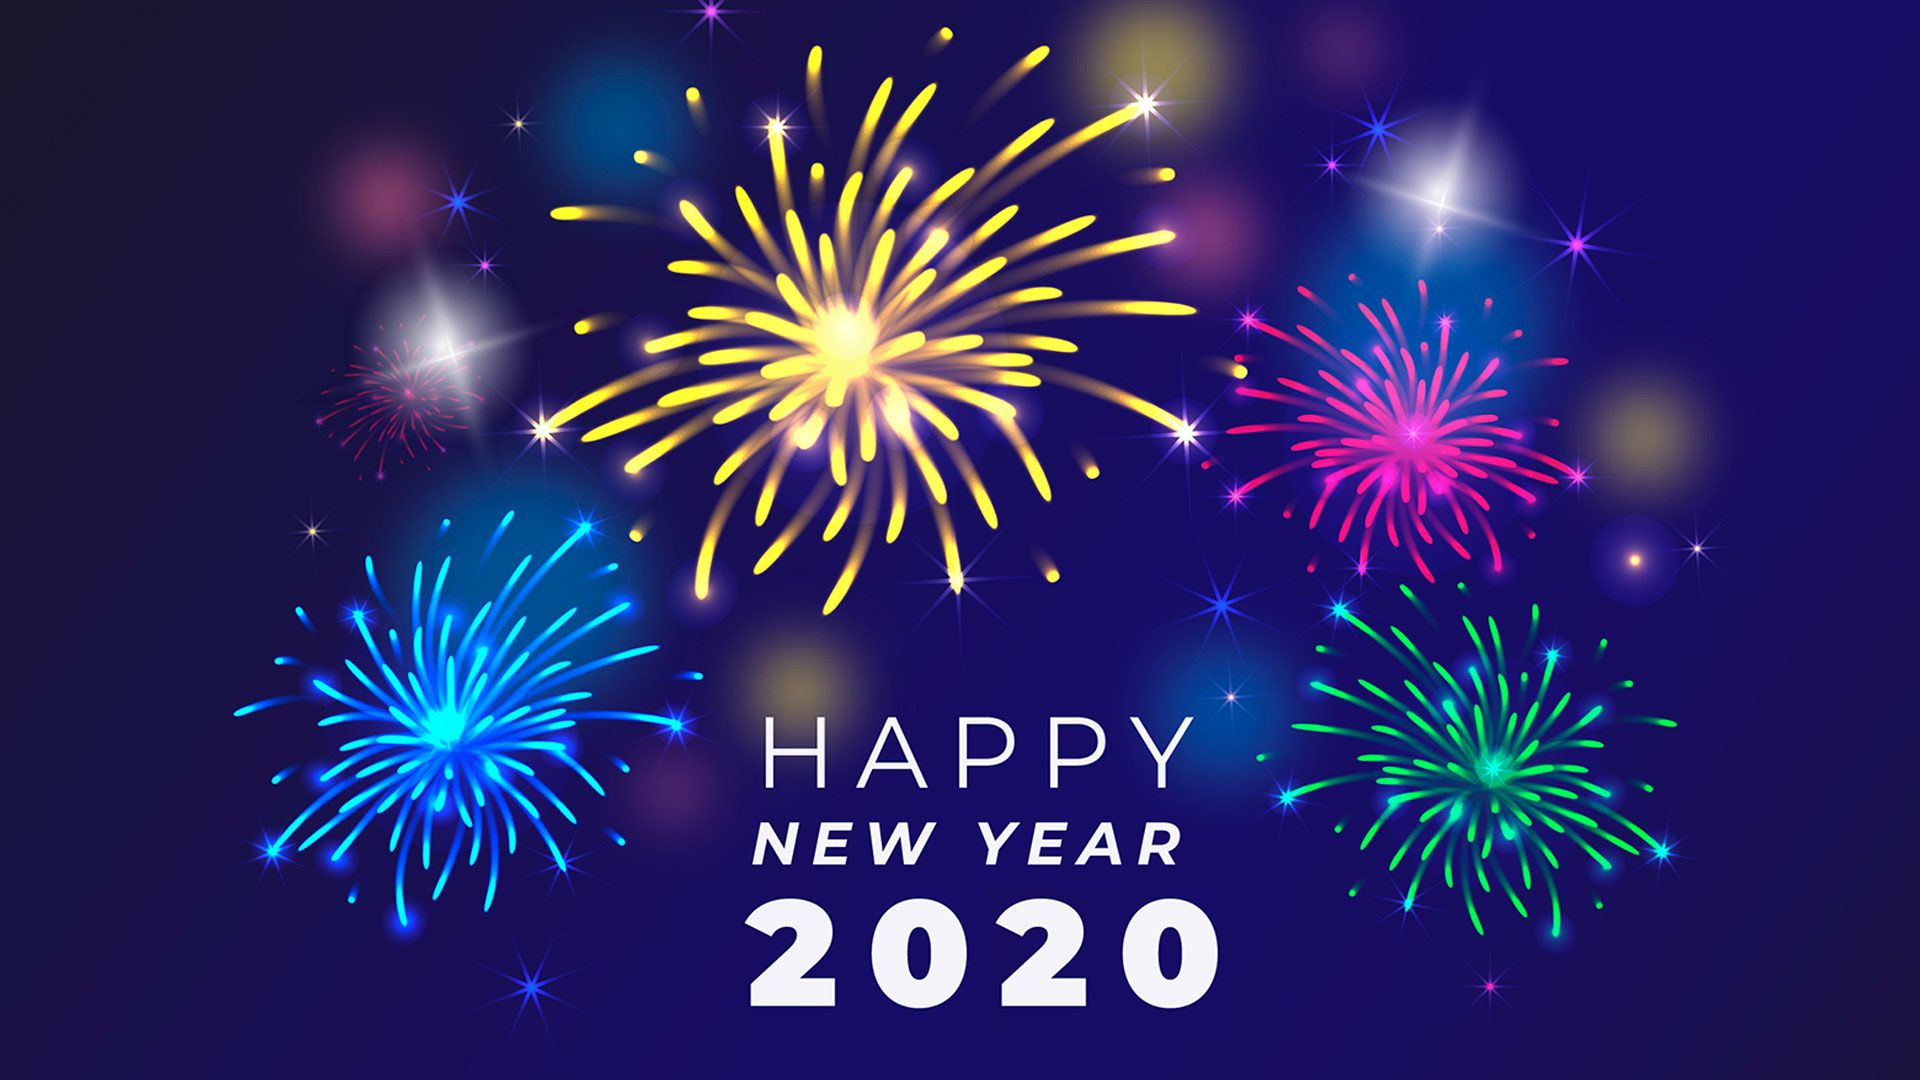 Happy New Year 2020 HD Wallpapers, Photos, Images Free